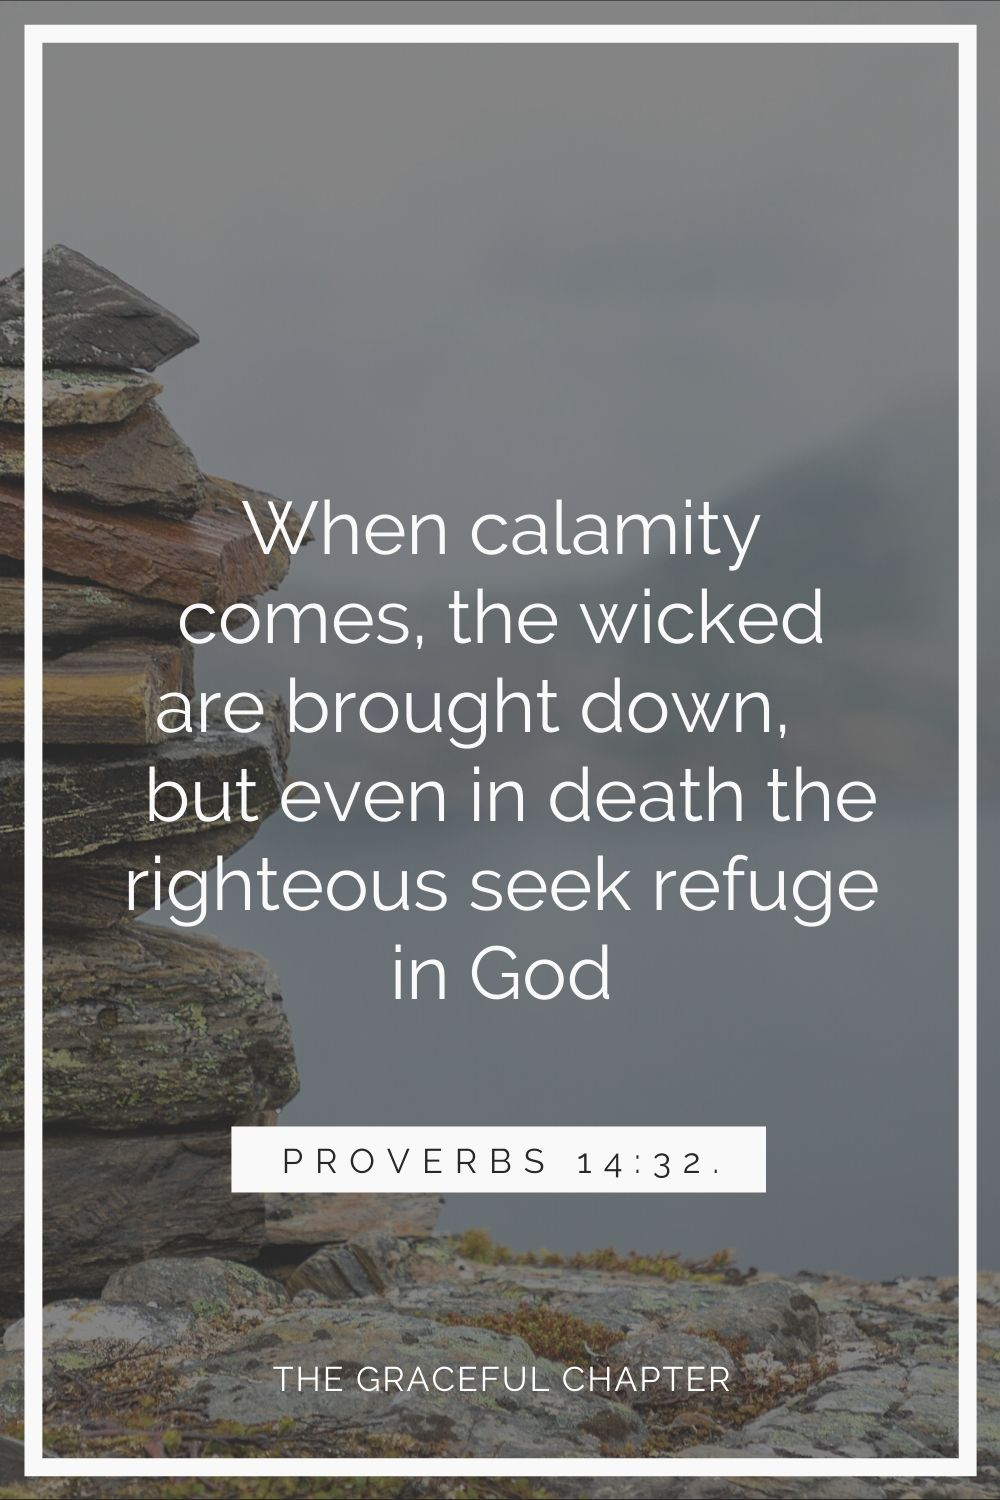 When calamity comes, the wicked are brought down, but even in death, the righteous seek refuge in God. Proverbs 14:32.